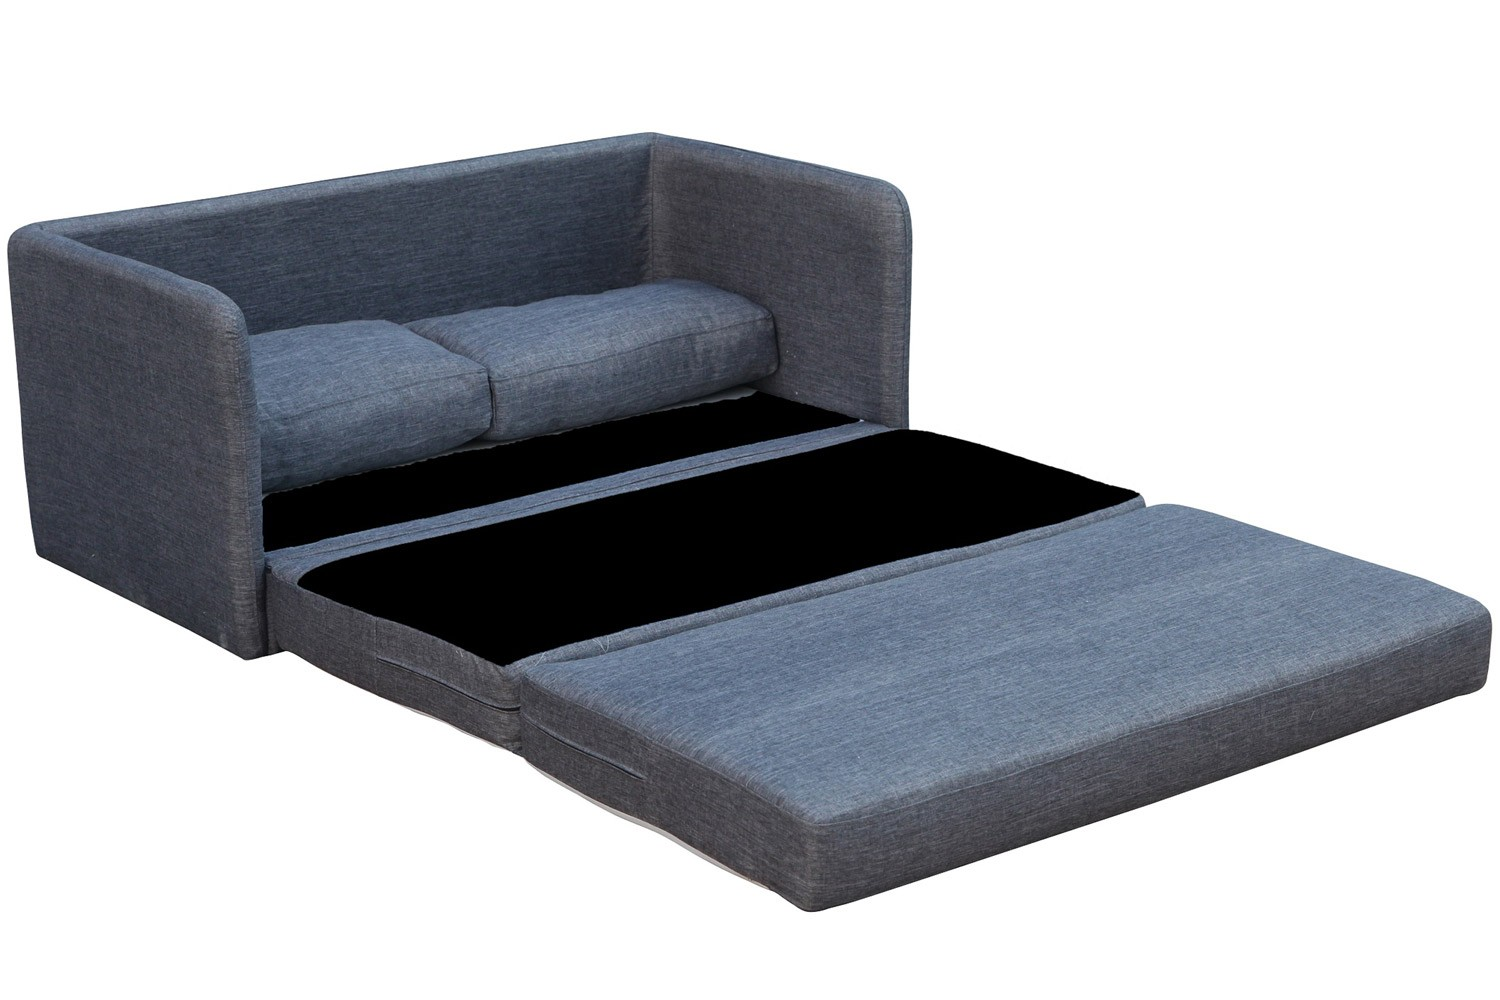 Two-seater sofa bed phillip gray space-saving two-seater sofa bed ESKBGCT